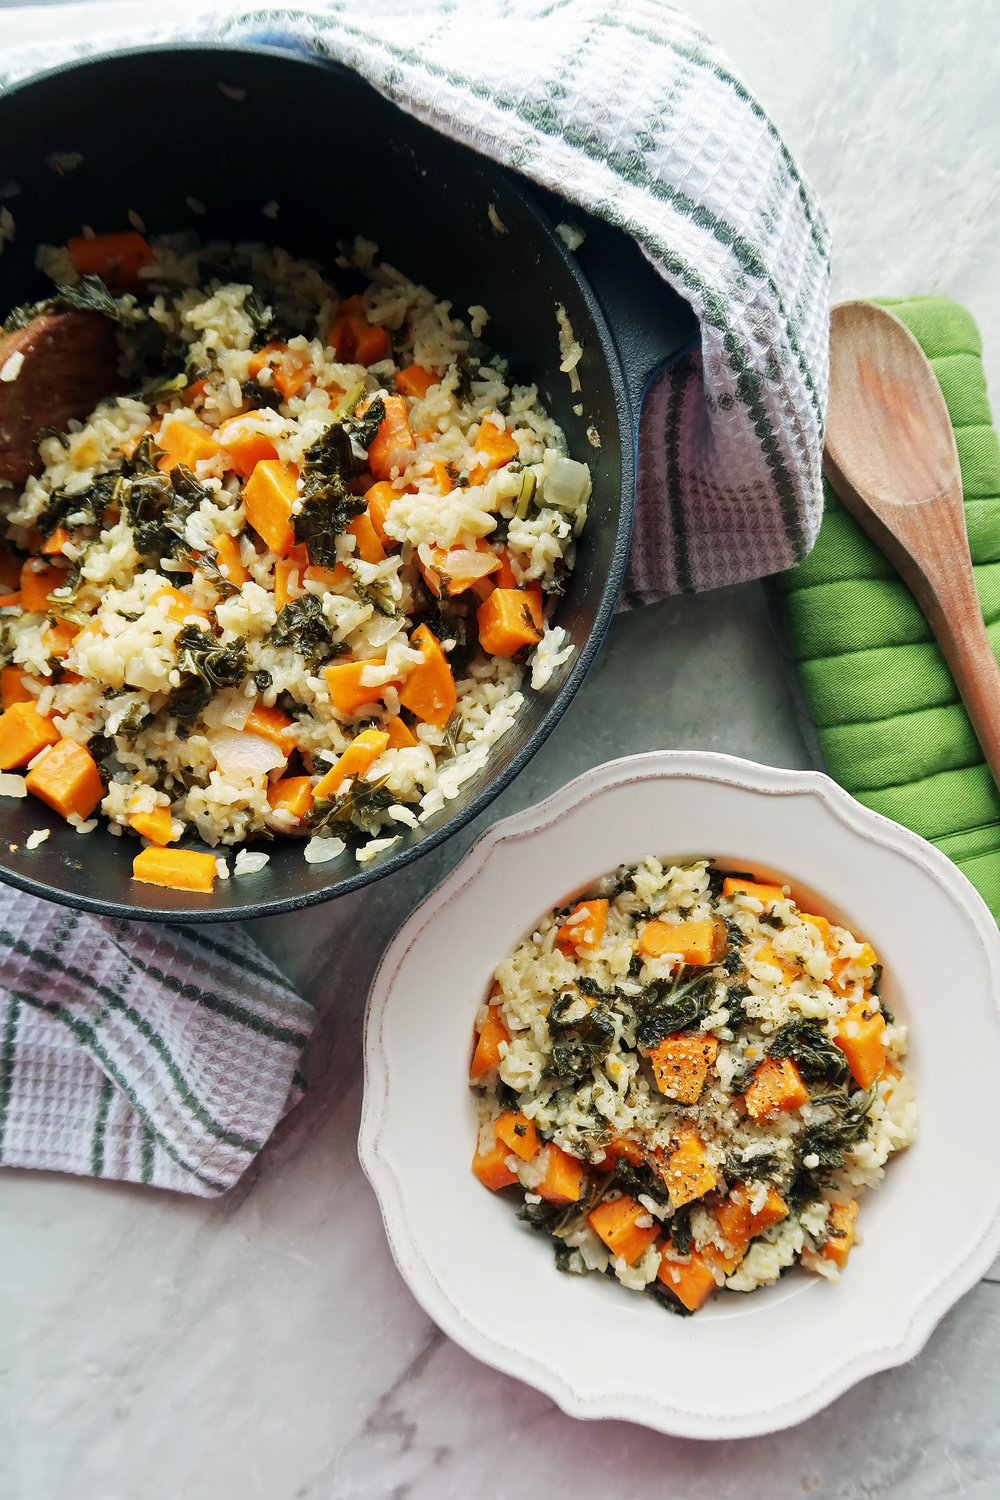 Oven-Baked Risotto with Sweet Potato and Kale on a white plate and in a Dutch oven.